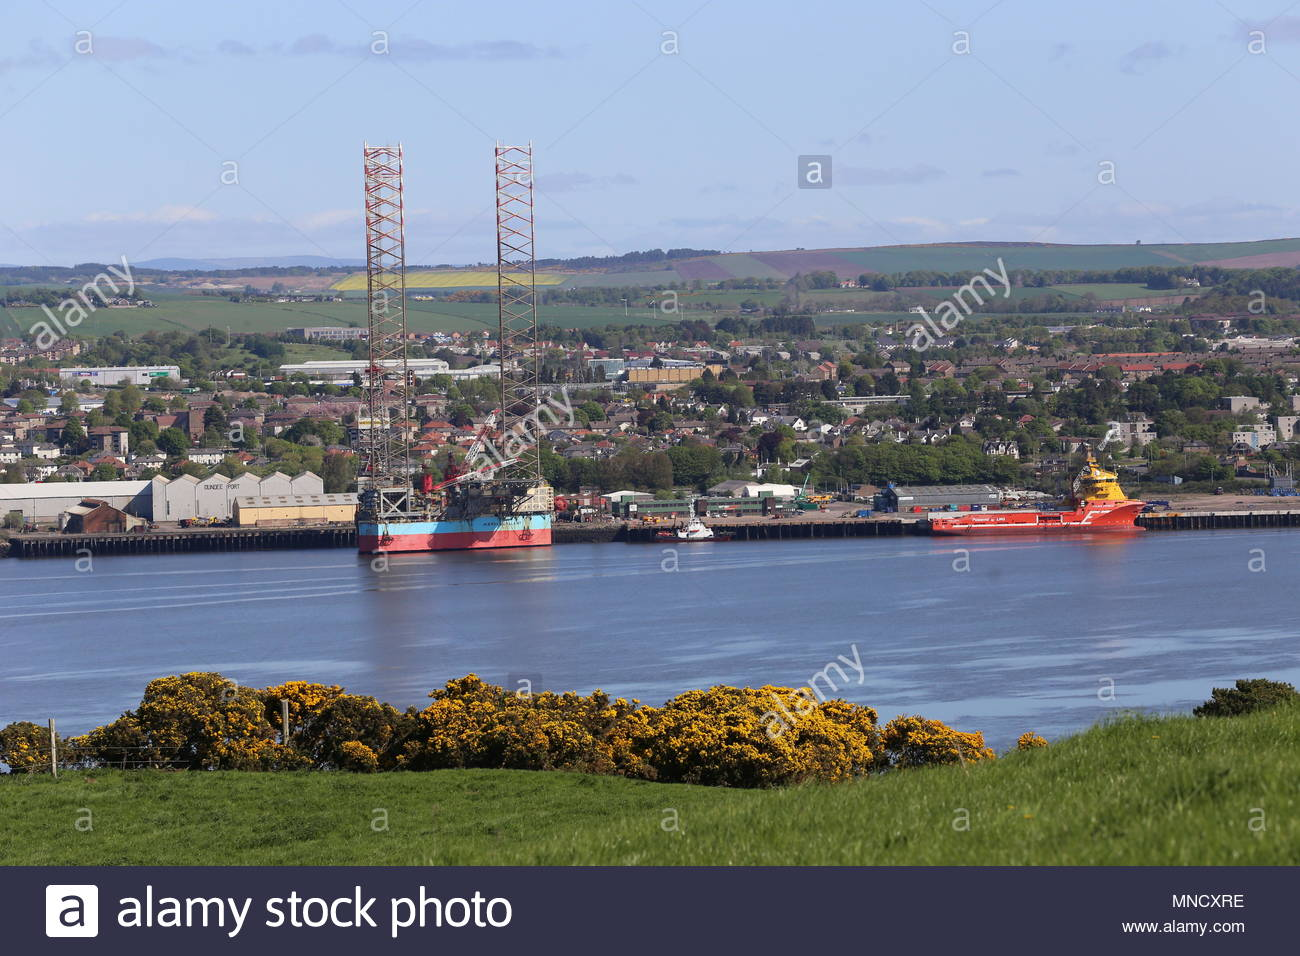 Oil rig Maersk Gallant at Port of Dundee Scotland  May 2018 - Stock Image